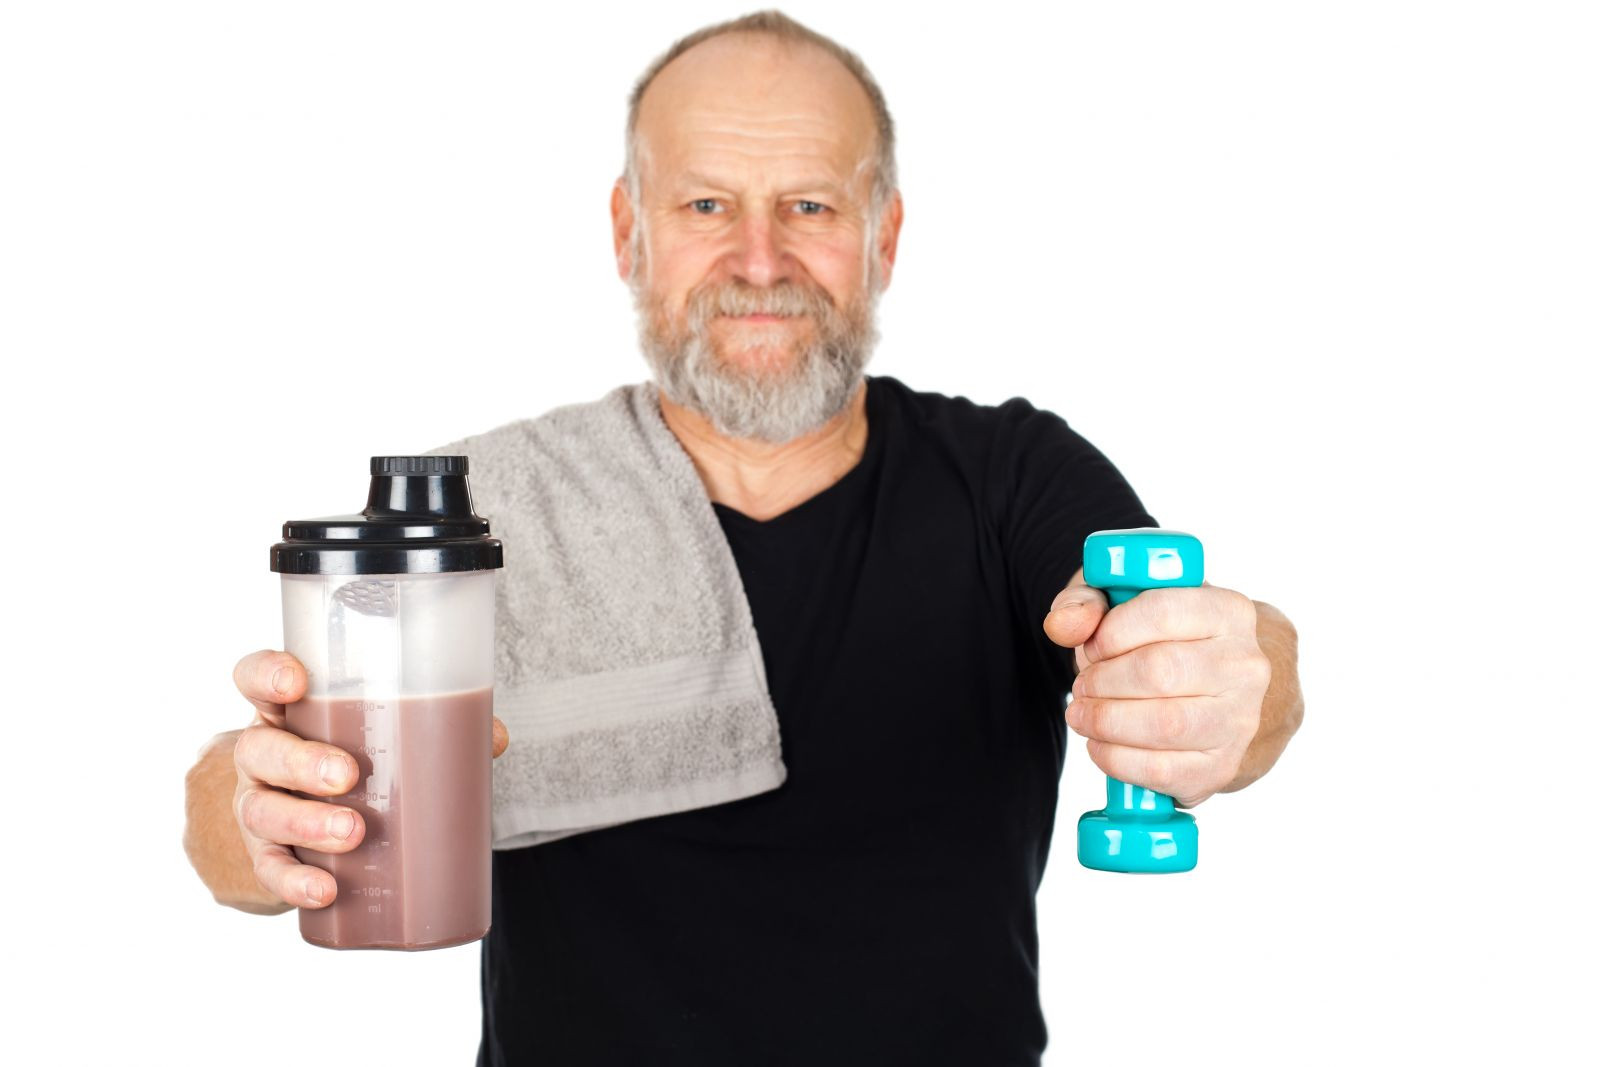 extra protein does not build more muscle